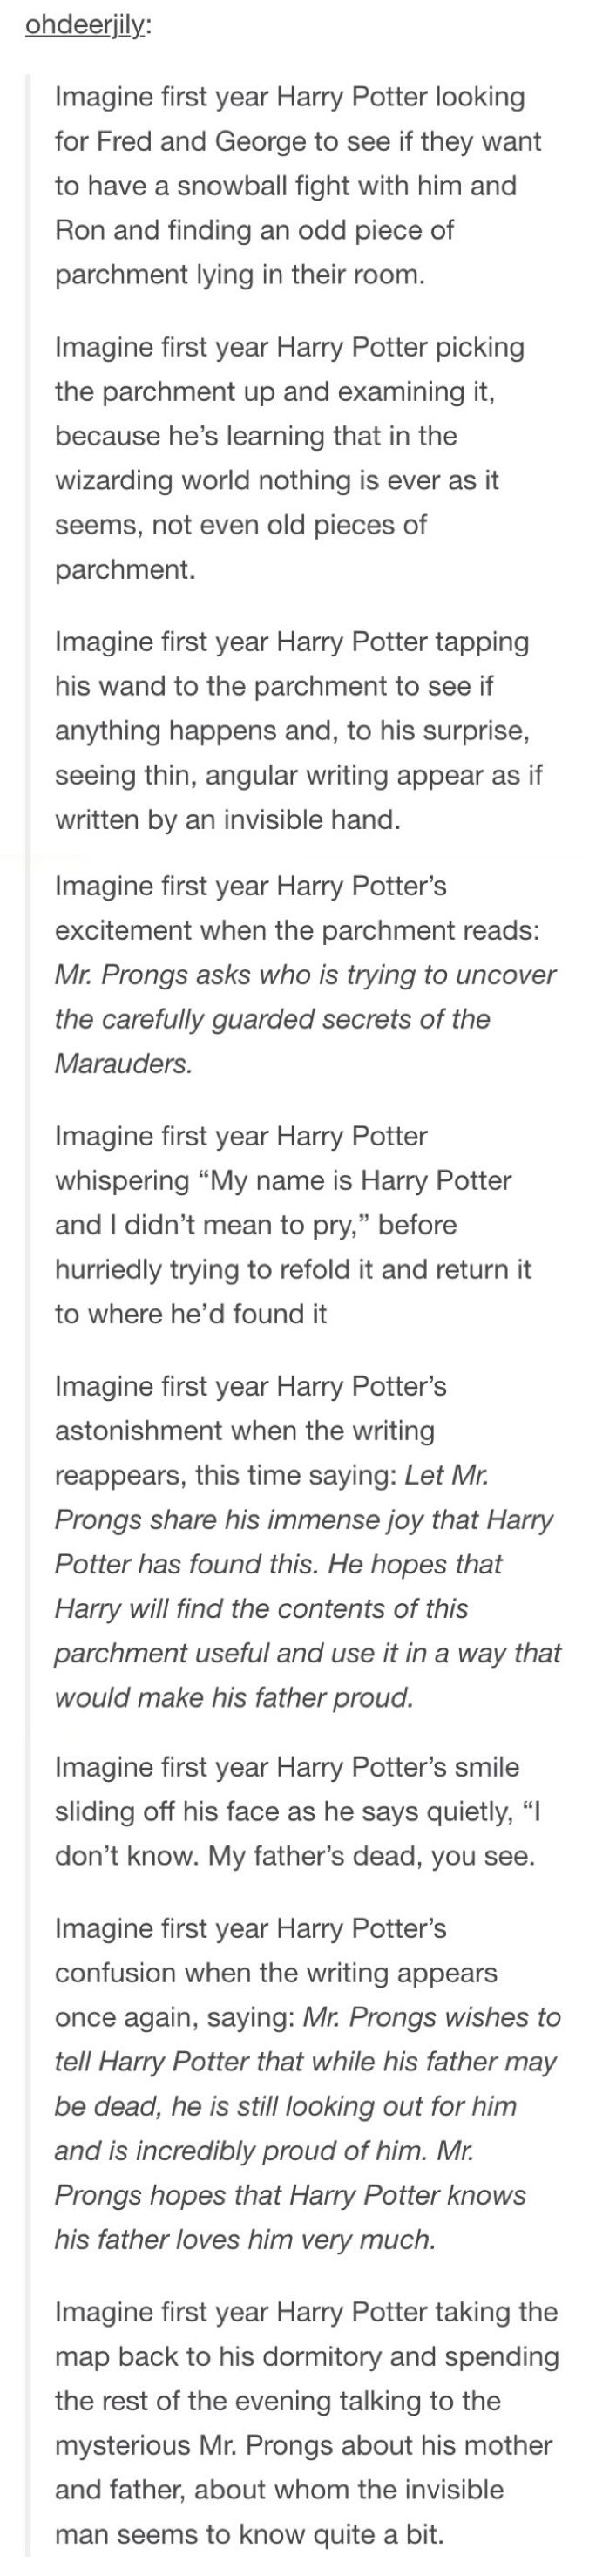 I love this but messer prongs would at most have the knowledge of 17 year old James Potter